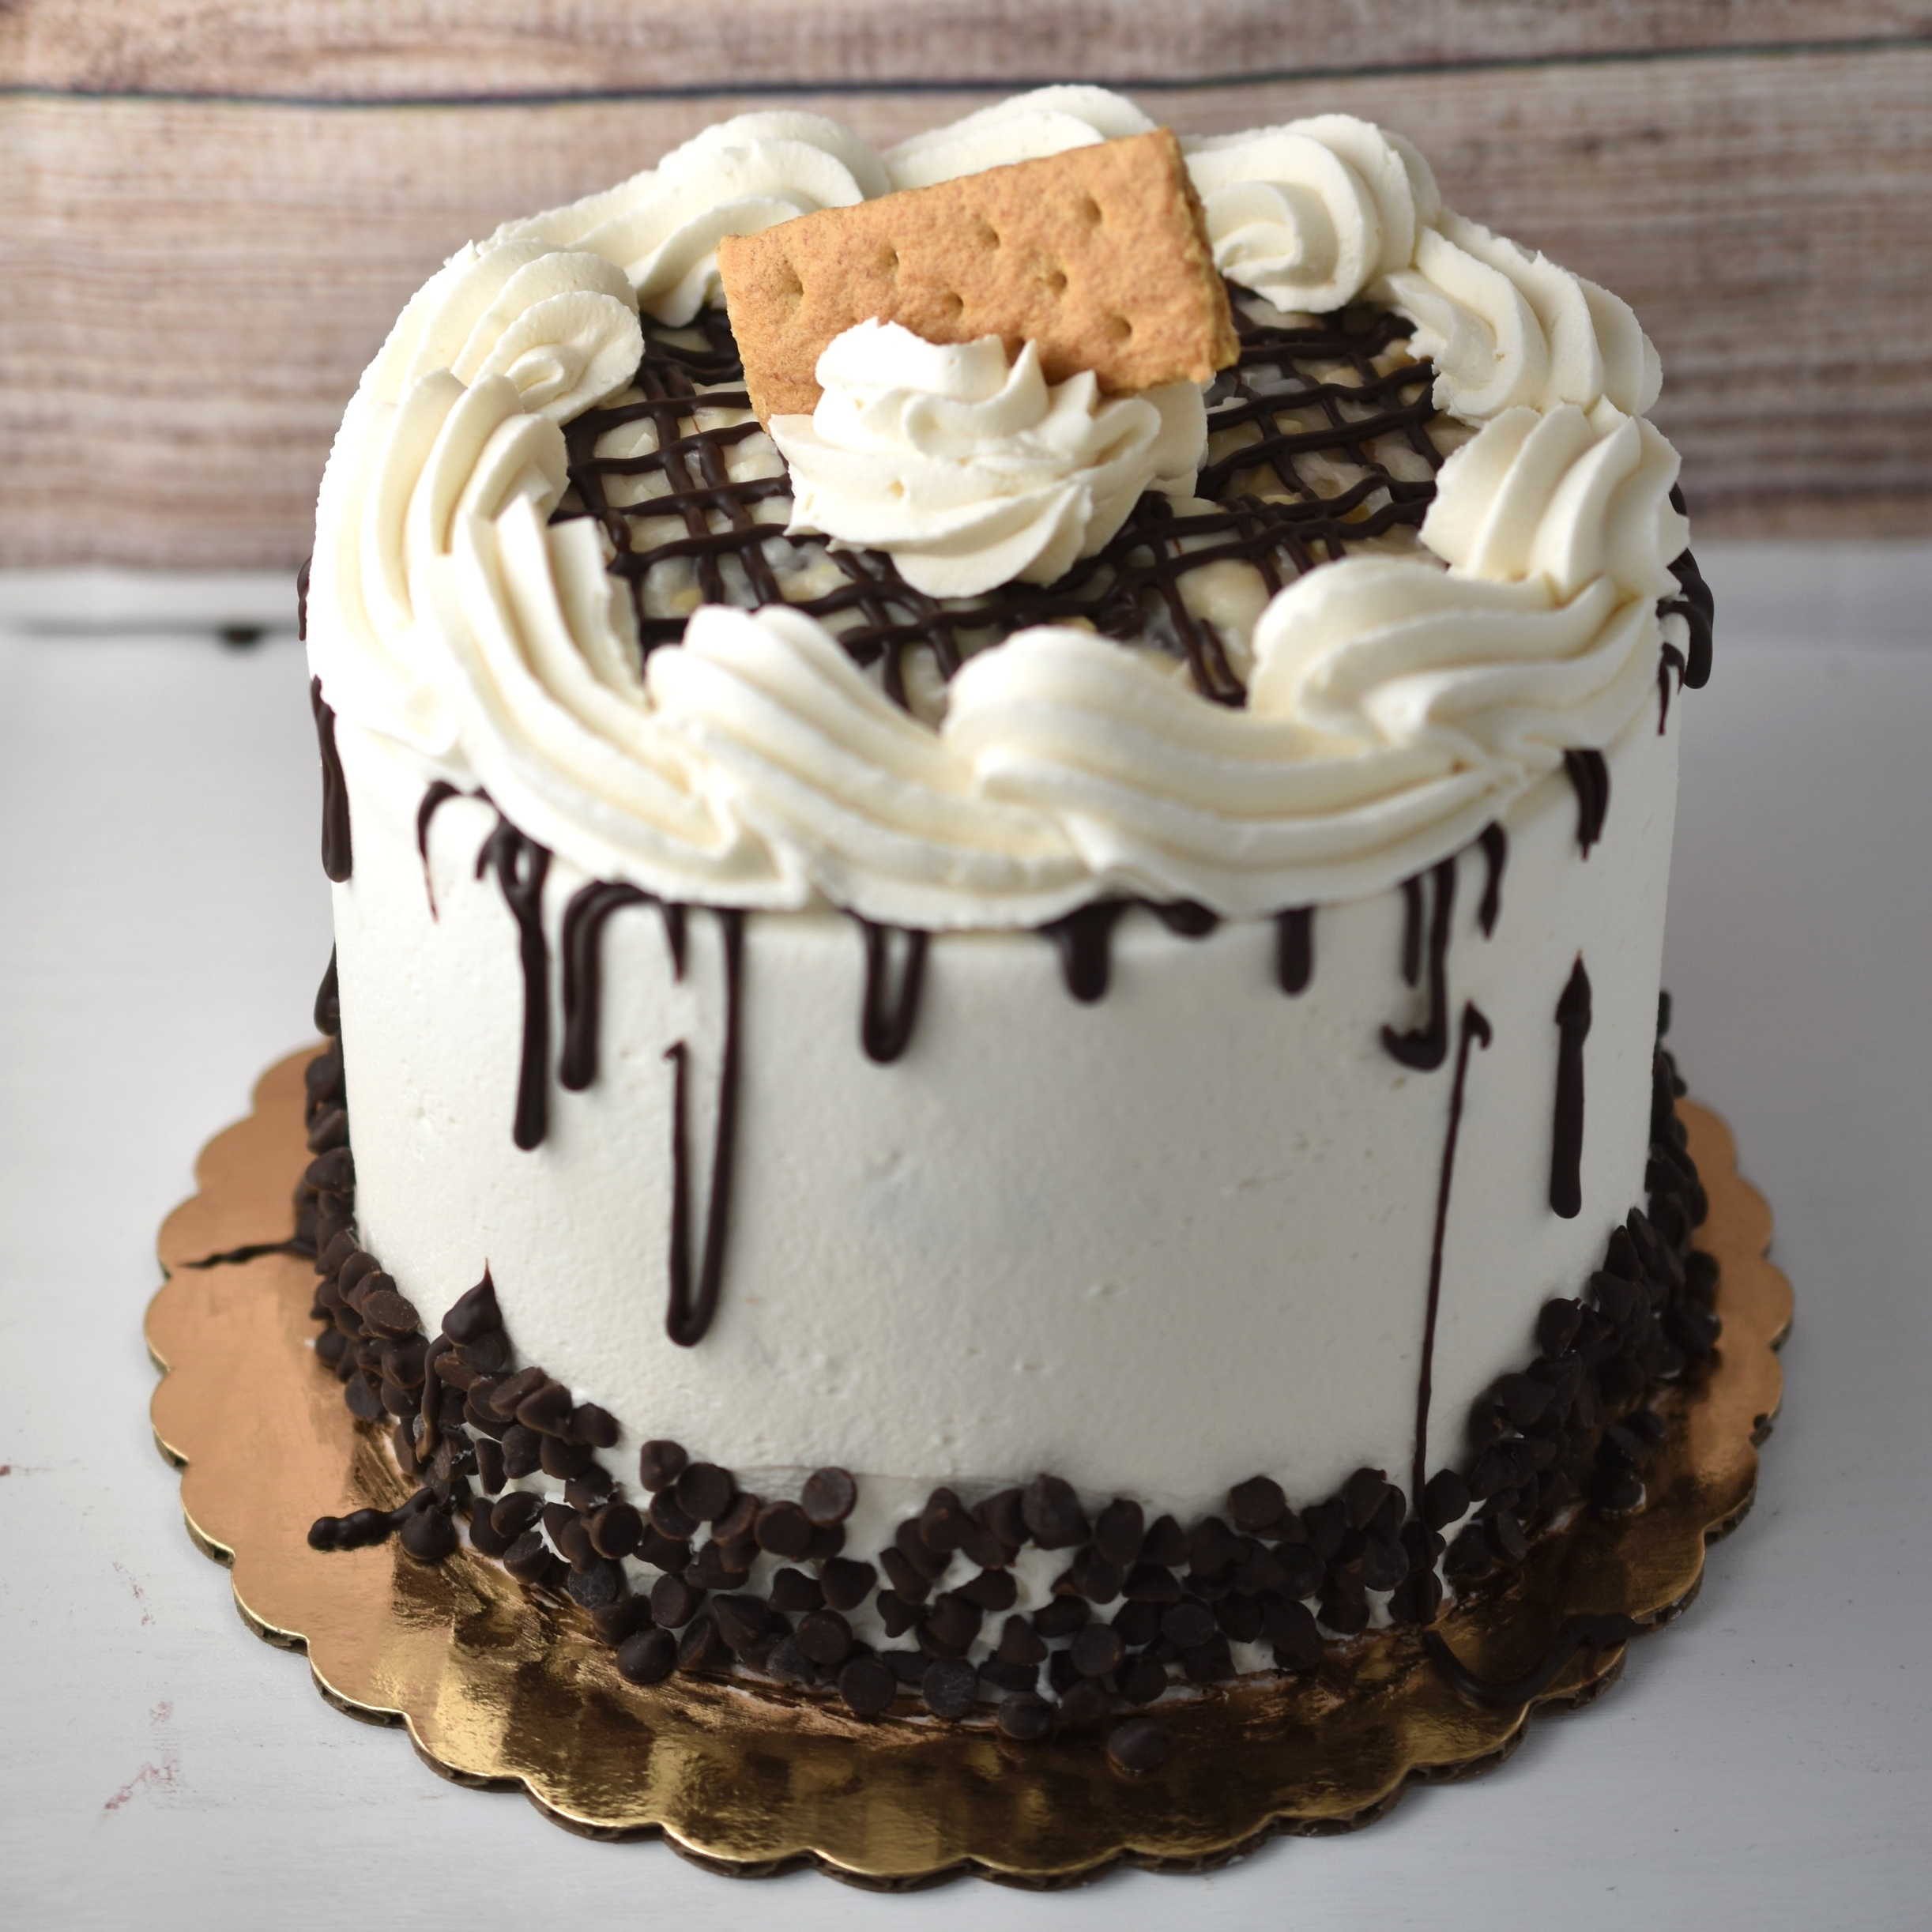 Magic Bar - This cake is inspired by our popular Magic bars. We have created a magical filling made up of coconut, chocolate chips, white chocolate, and peanuts. This tasty filling is then sandwiched between vanilla cake layers and frosted with whipped coconut frosting.